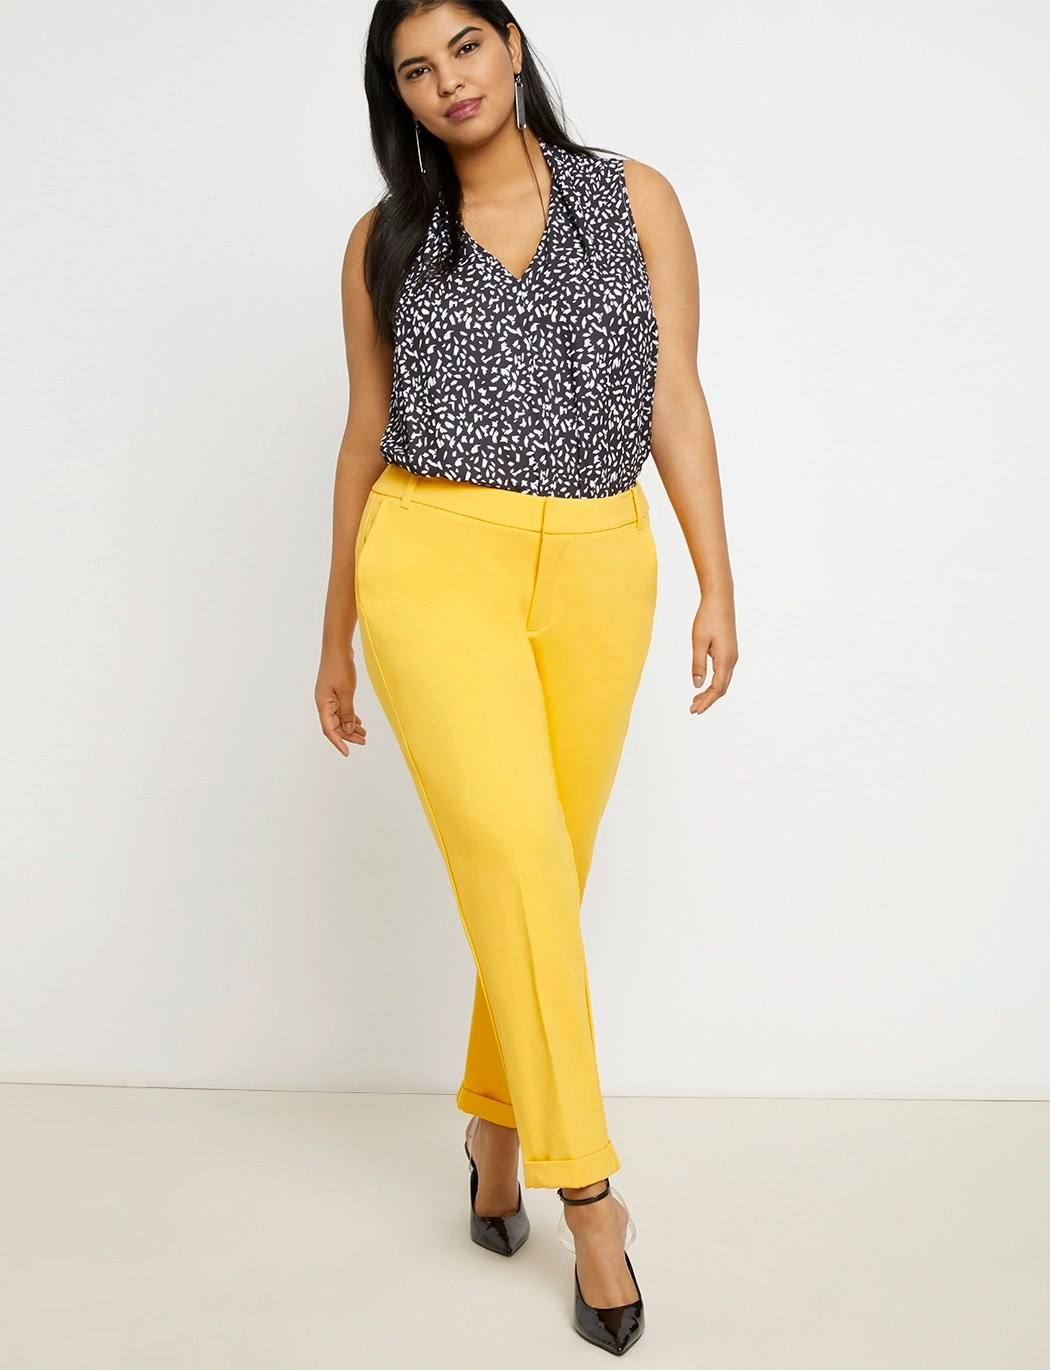 9-to-5 Ankle Cuff Work Pant 6